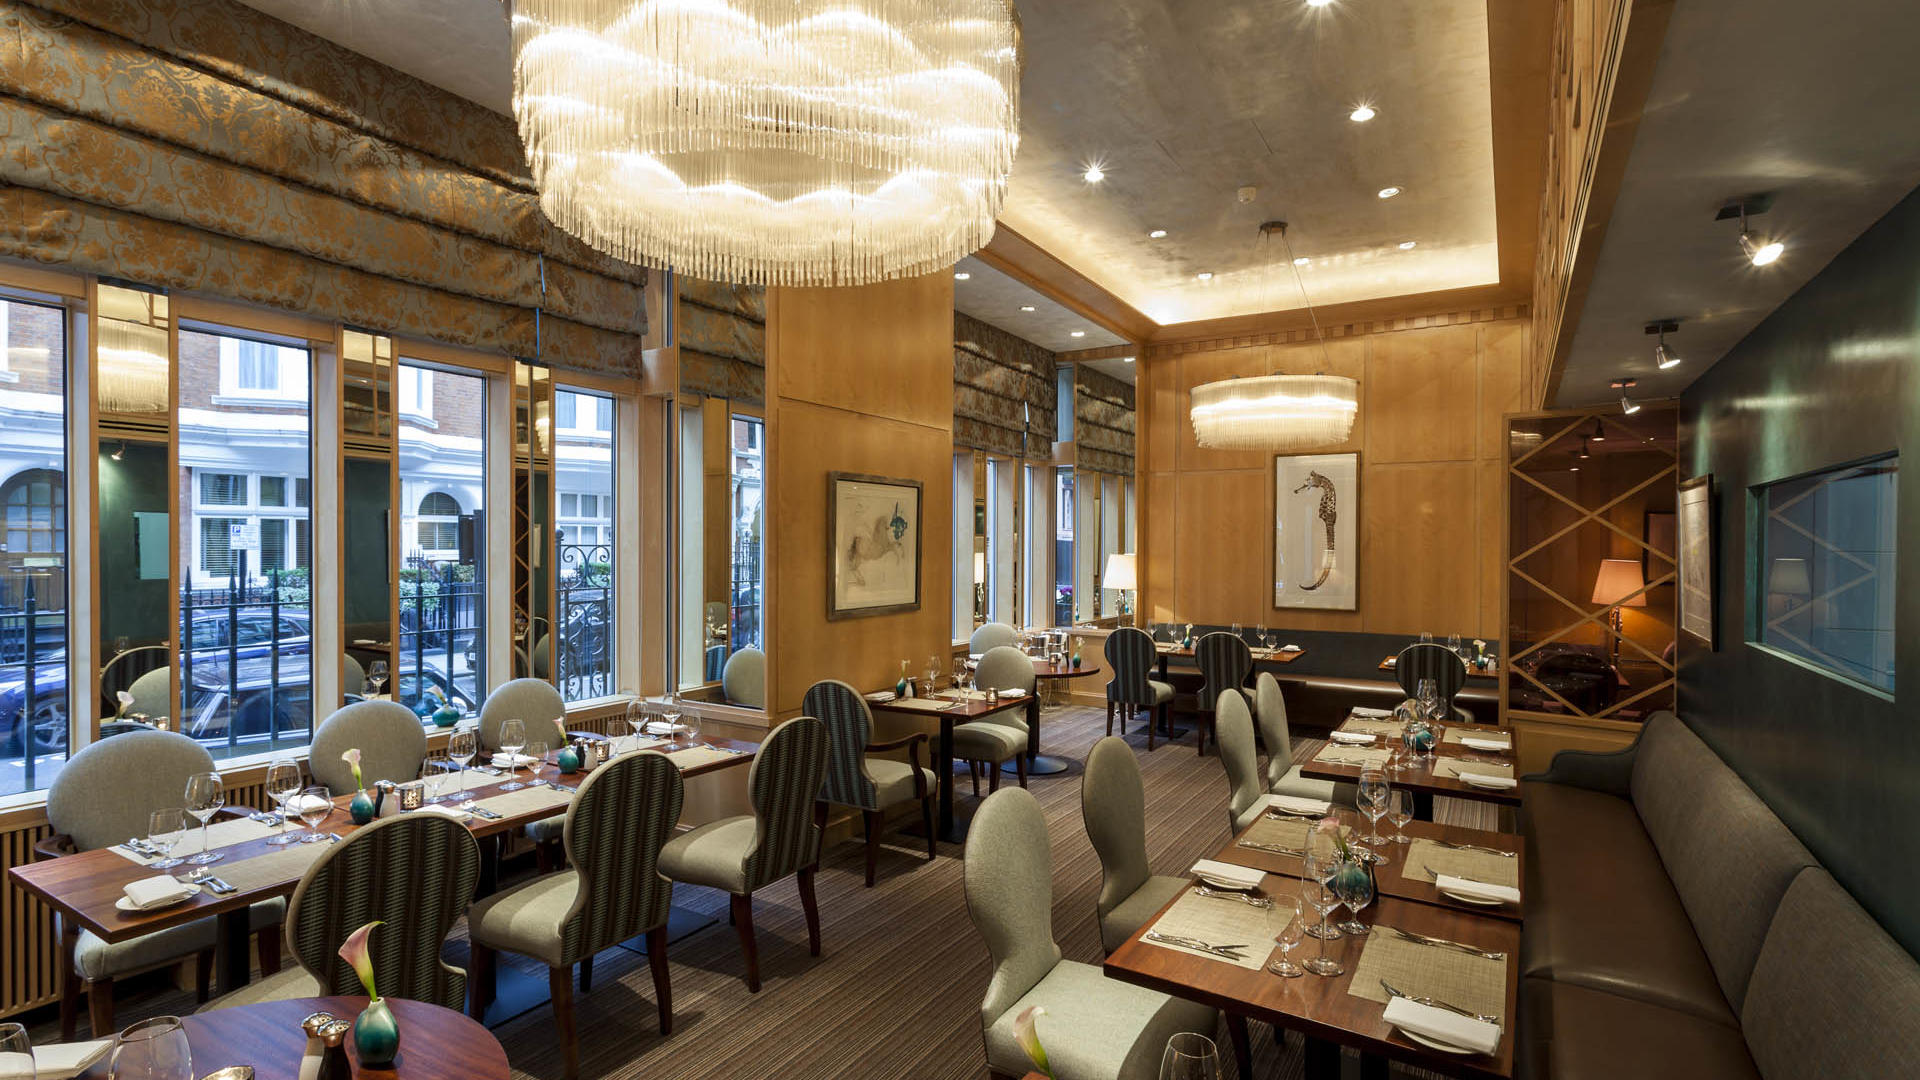 Dining area with exterior view at The Restaurant at the Capital